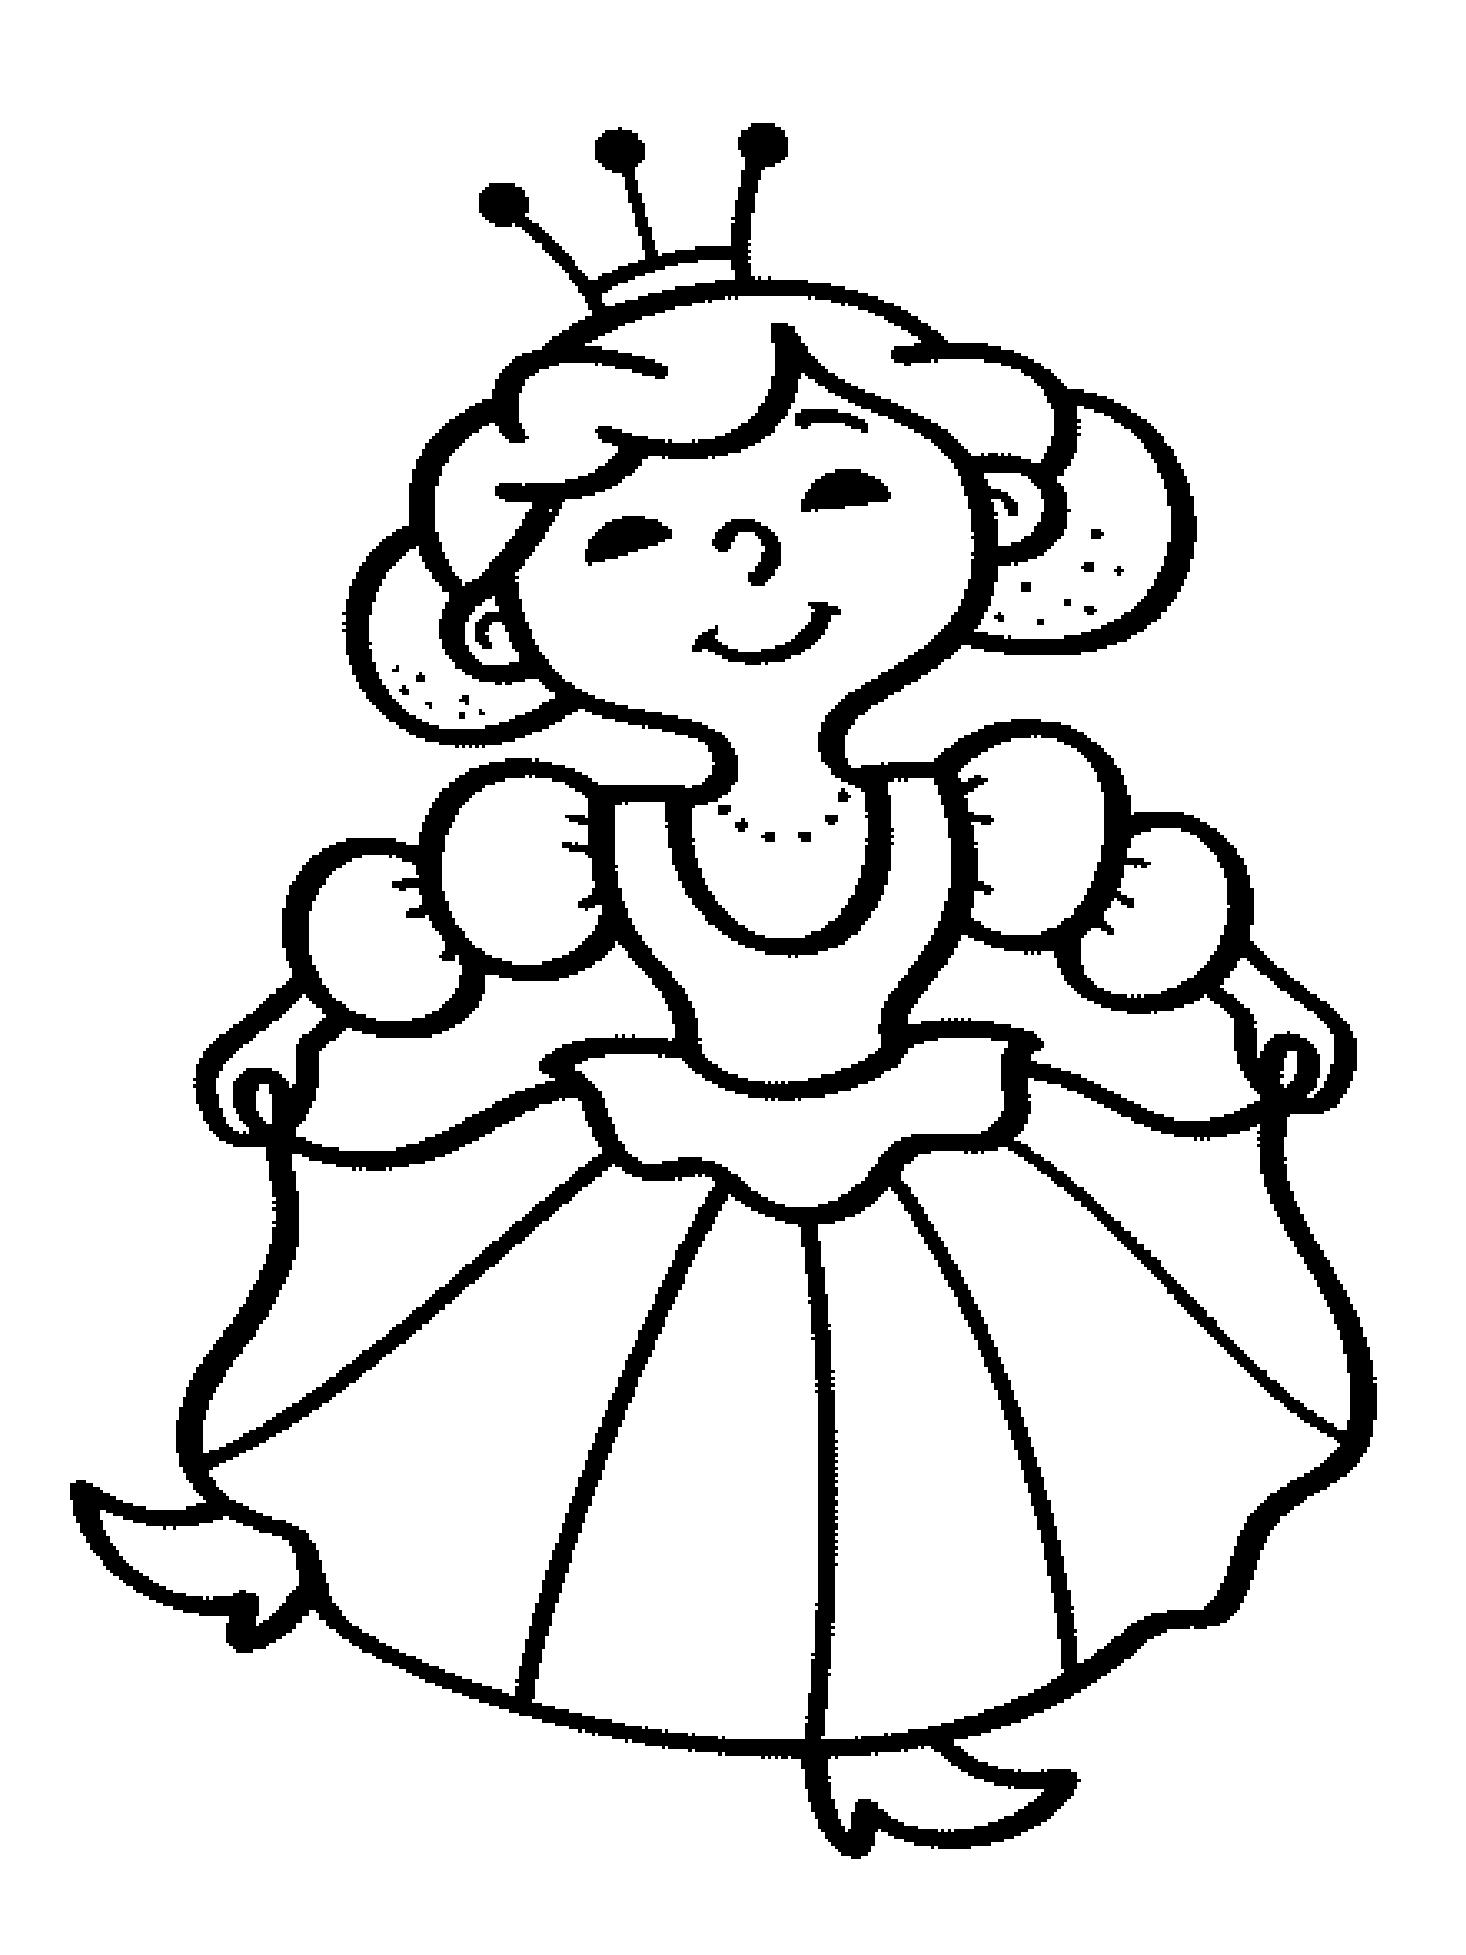 spanish folktale coloring pages - photo#36